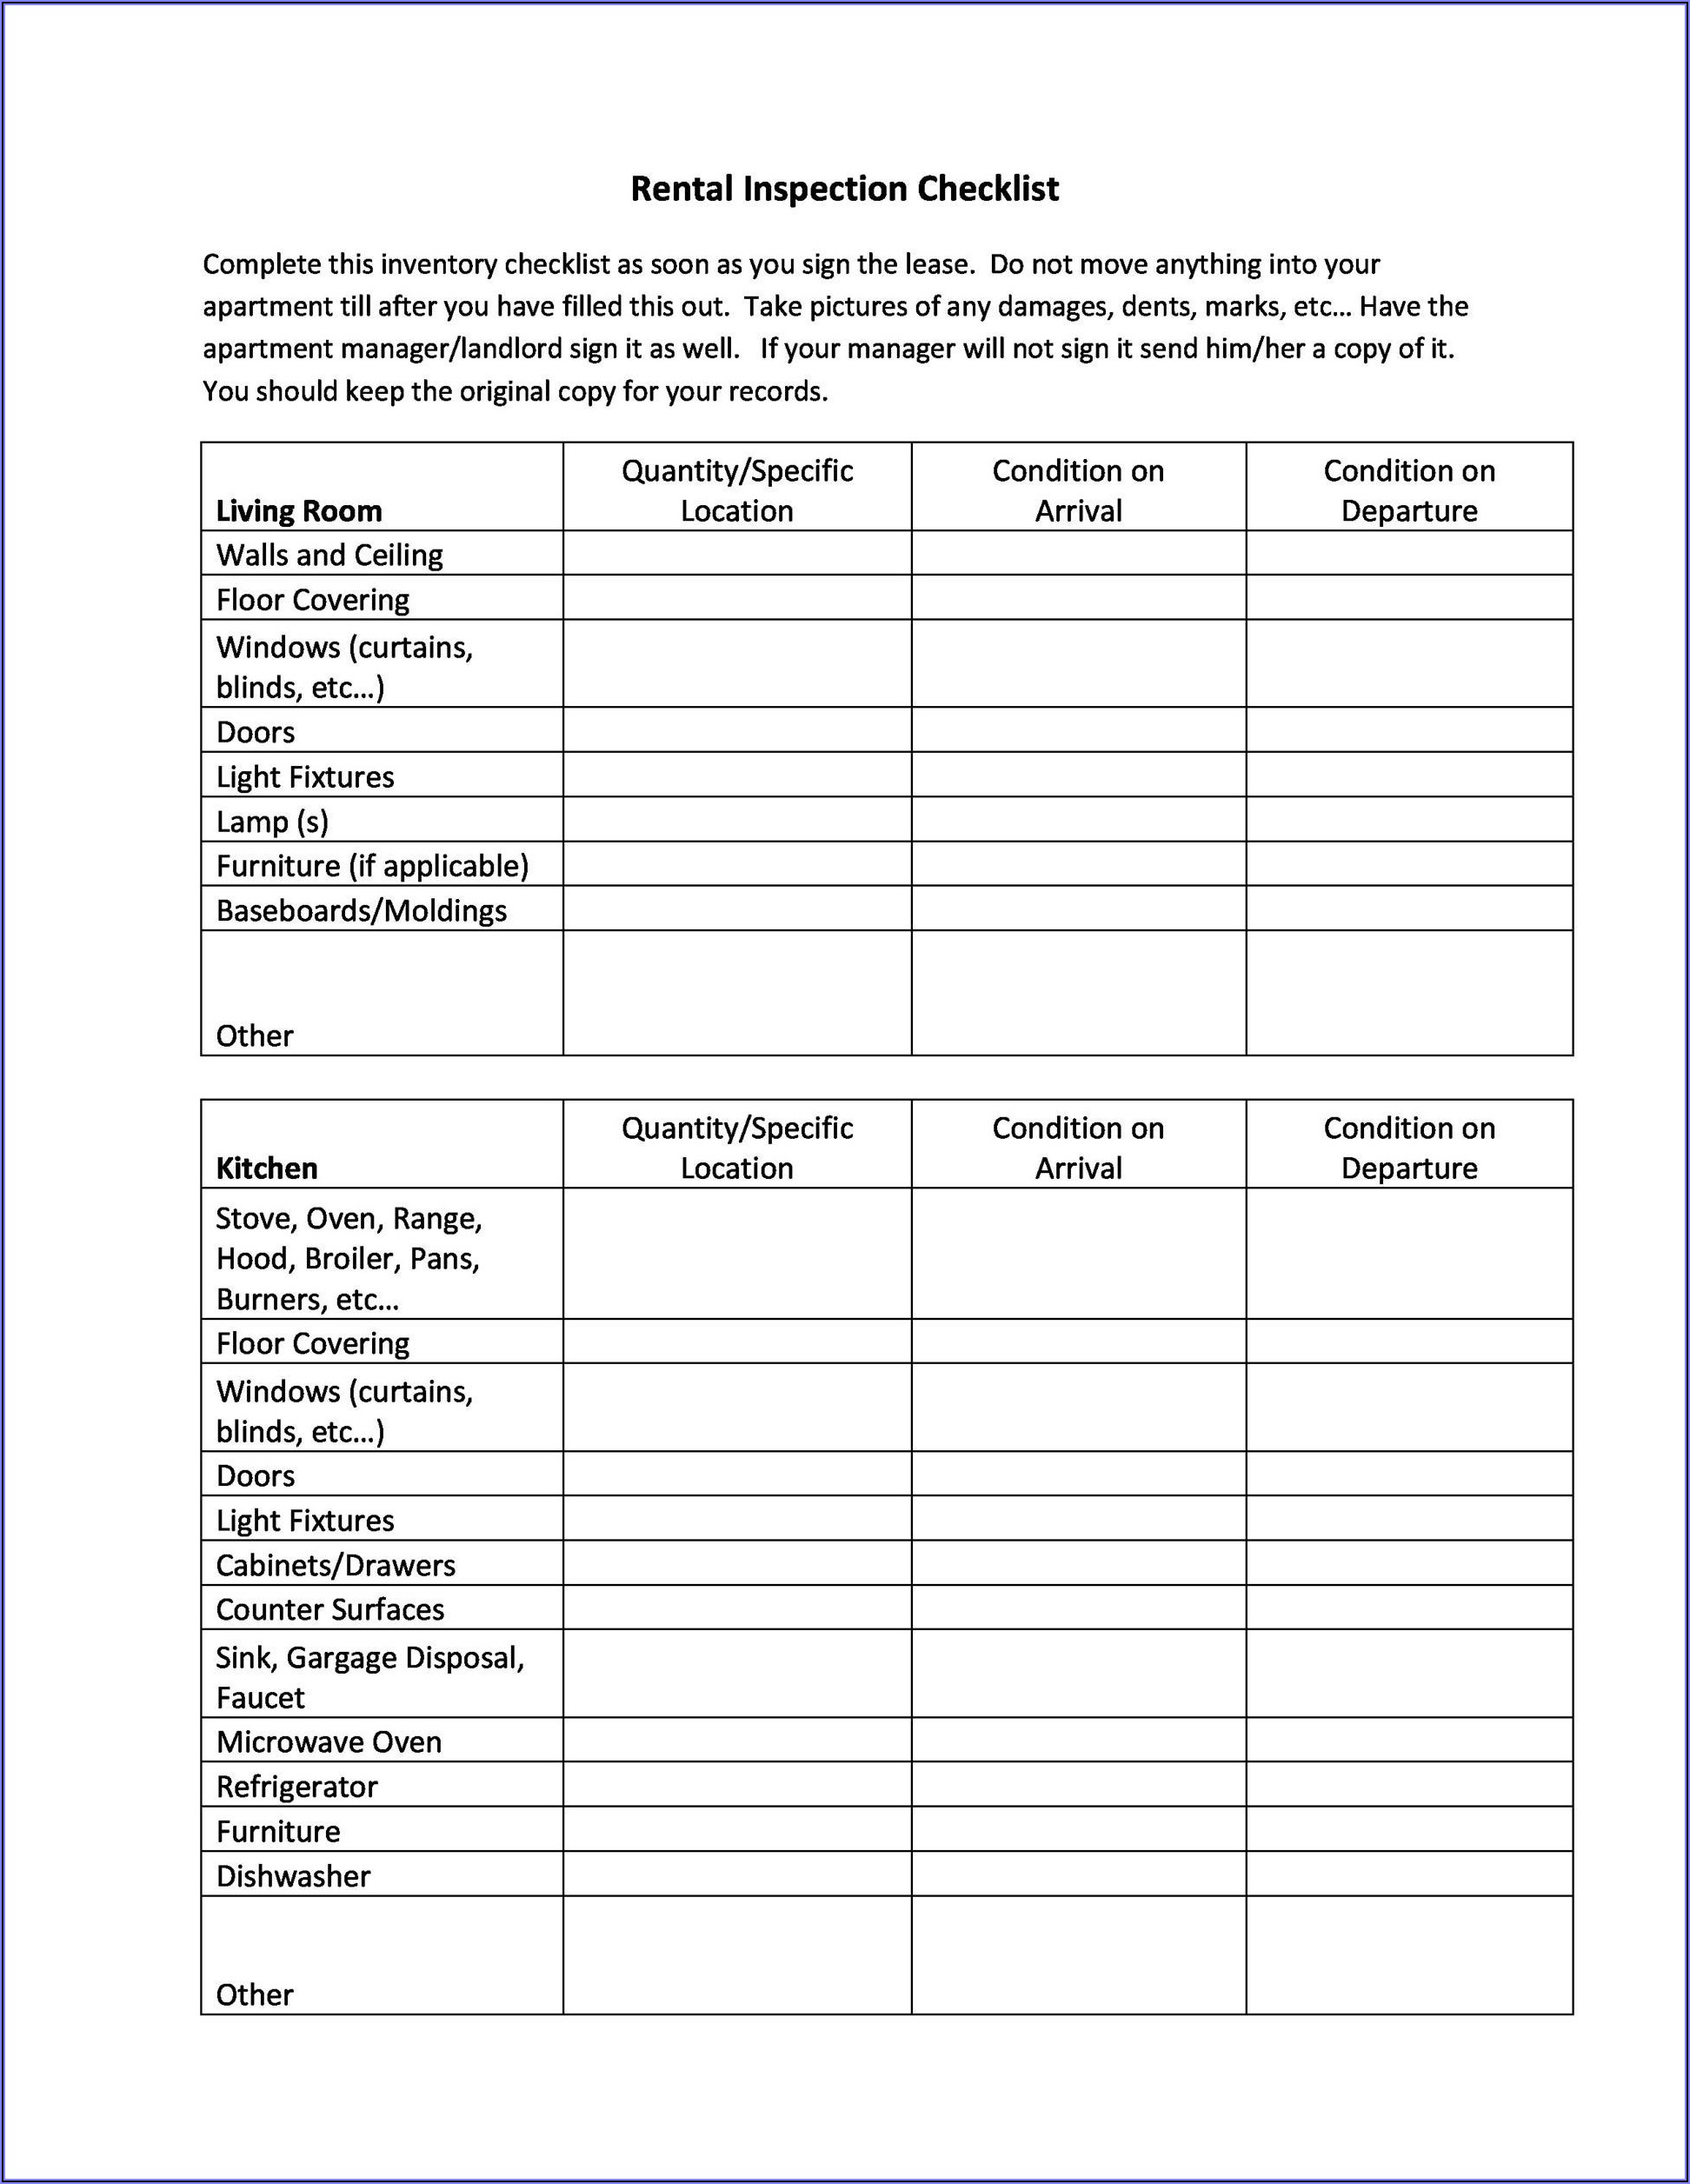 Home Inspection Checklist Forms Free